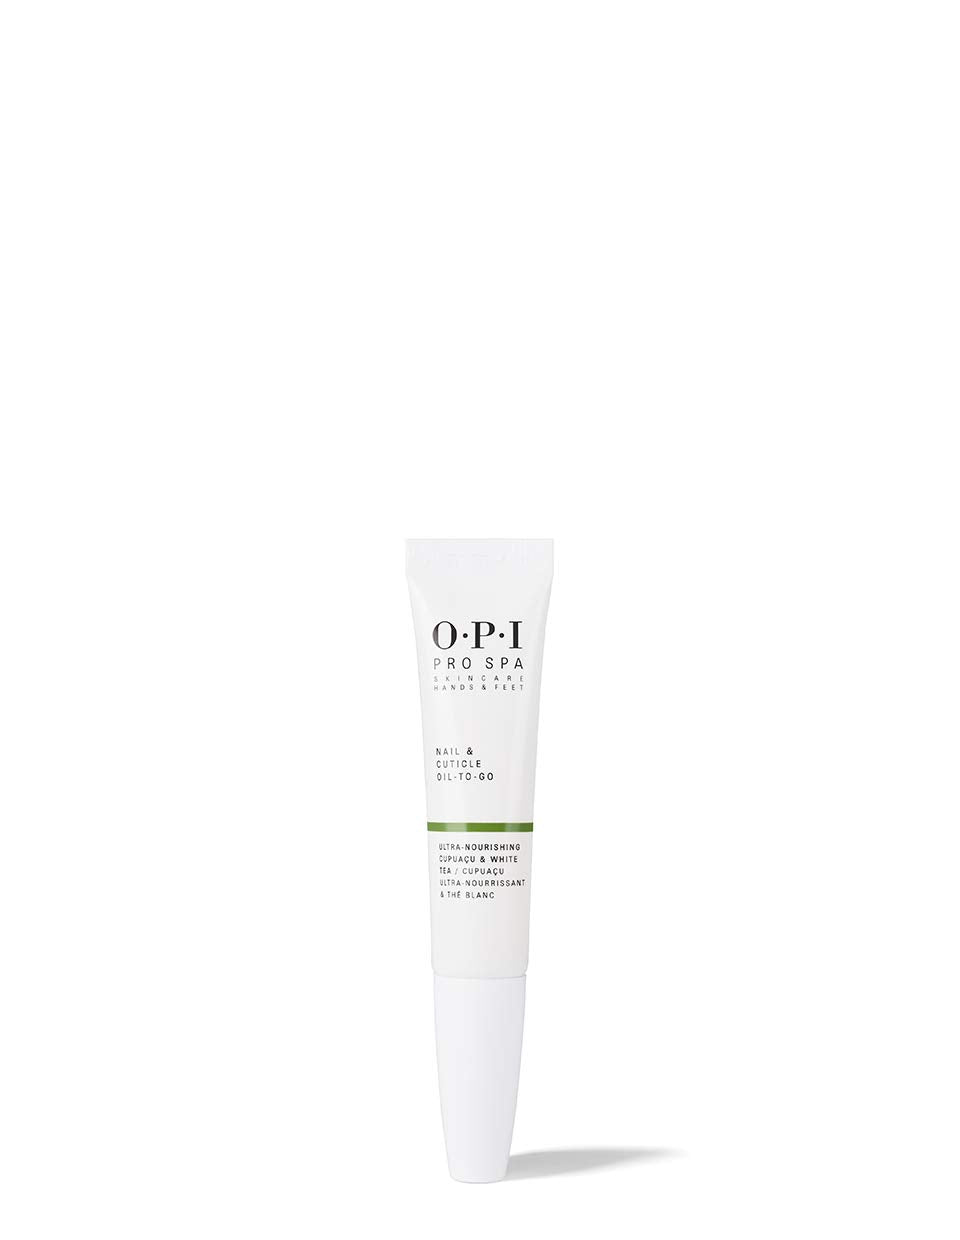 OPI Skin Care Nail & Cuticle Oil To Go (7.5ml)